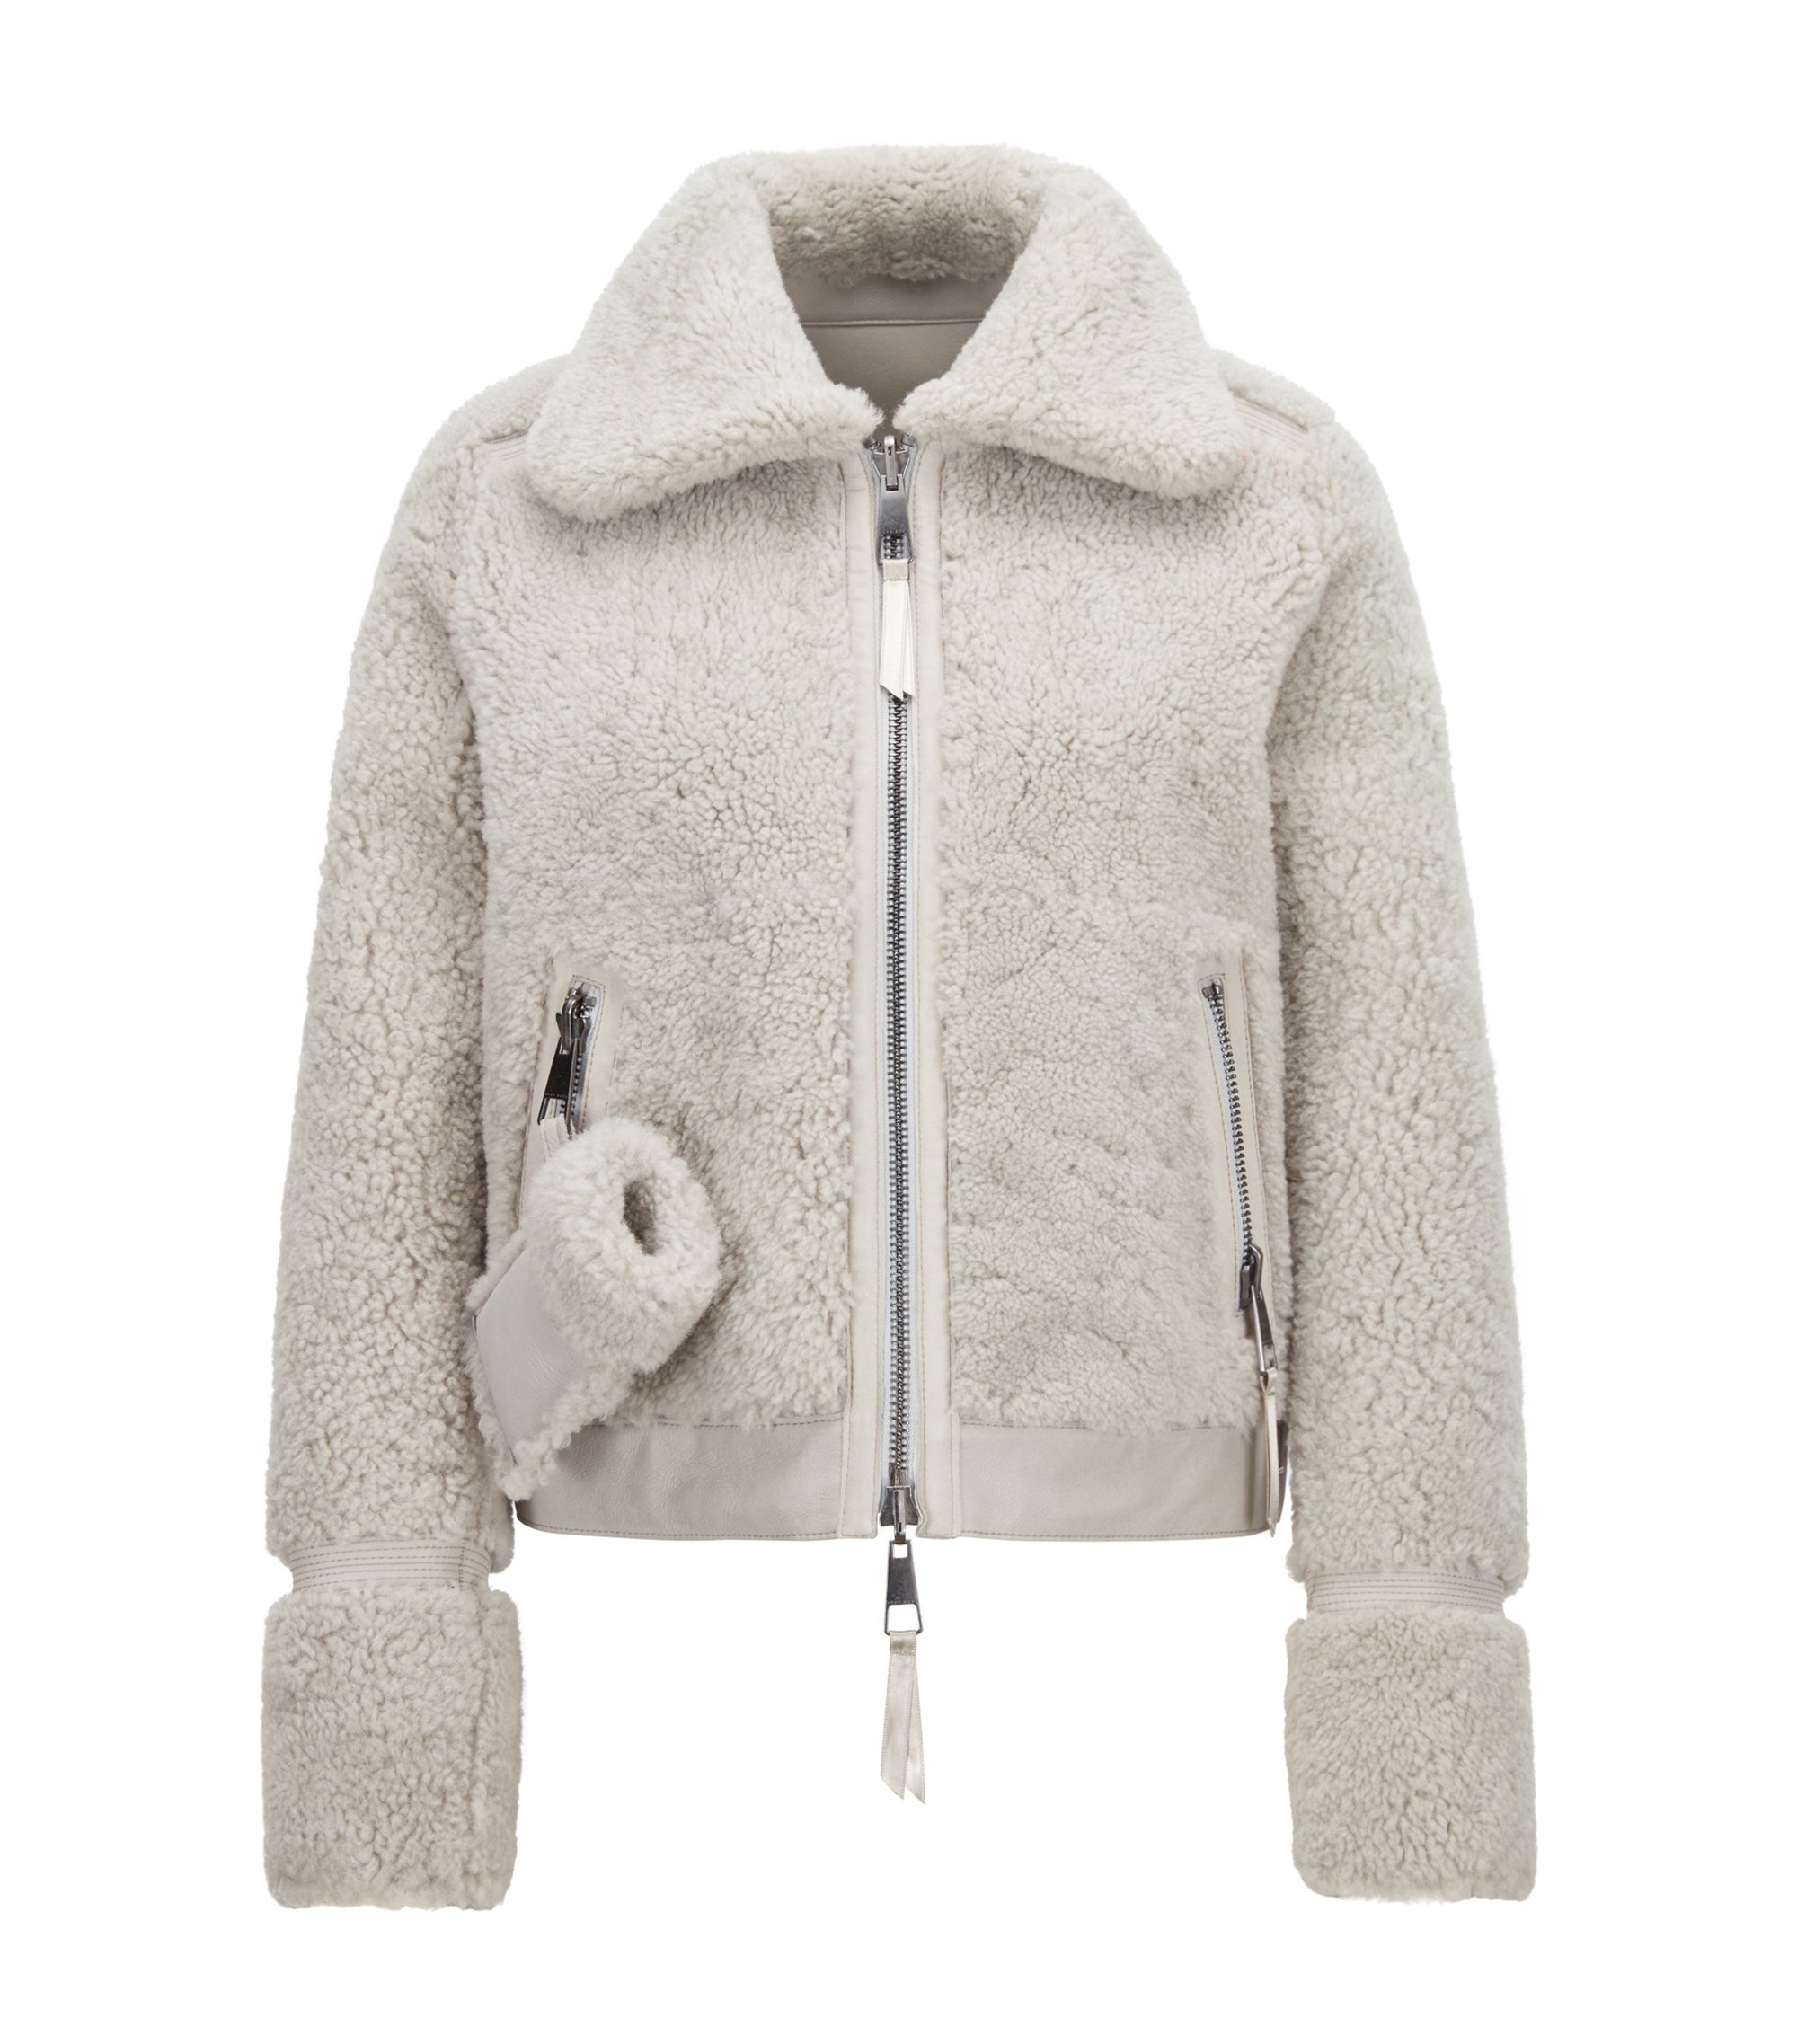 Reversible sheepskin jacket with stitch detailing, Silver